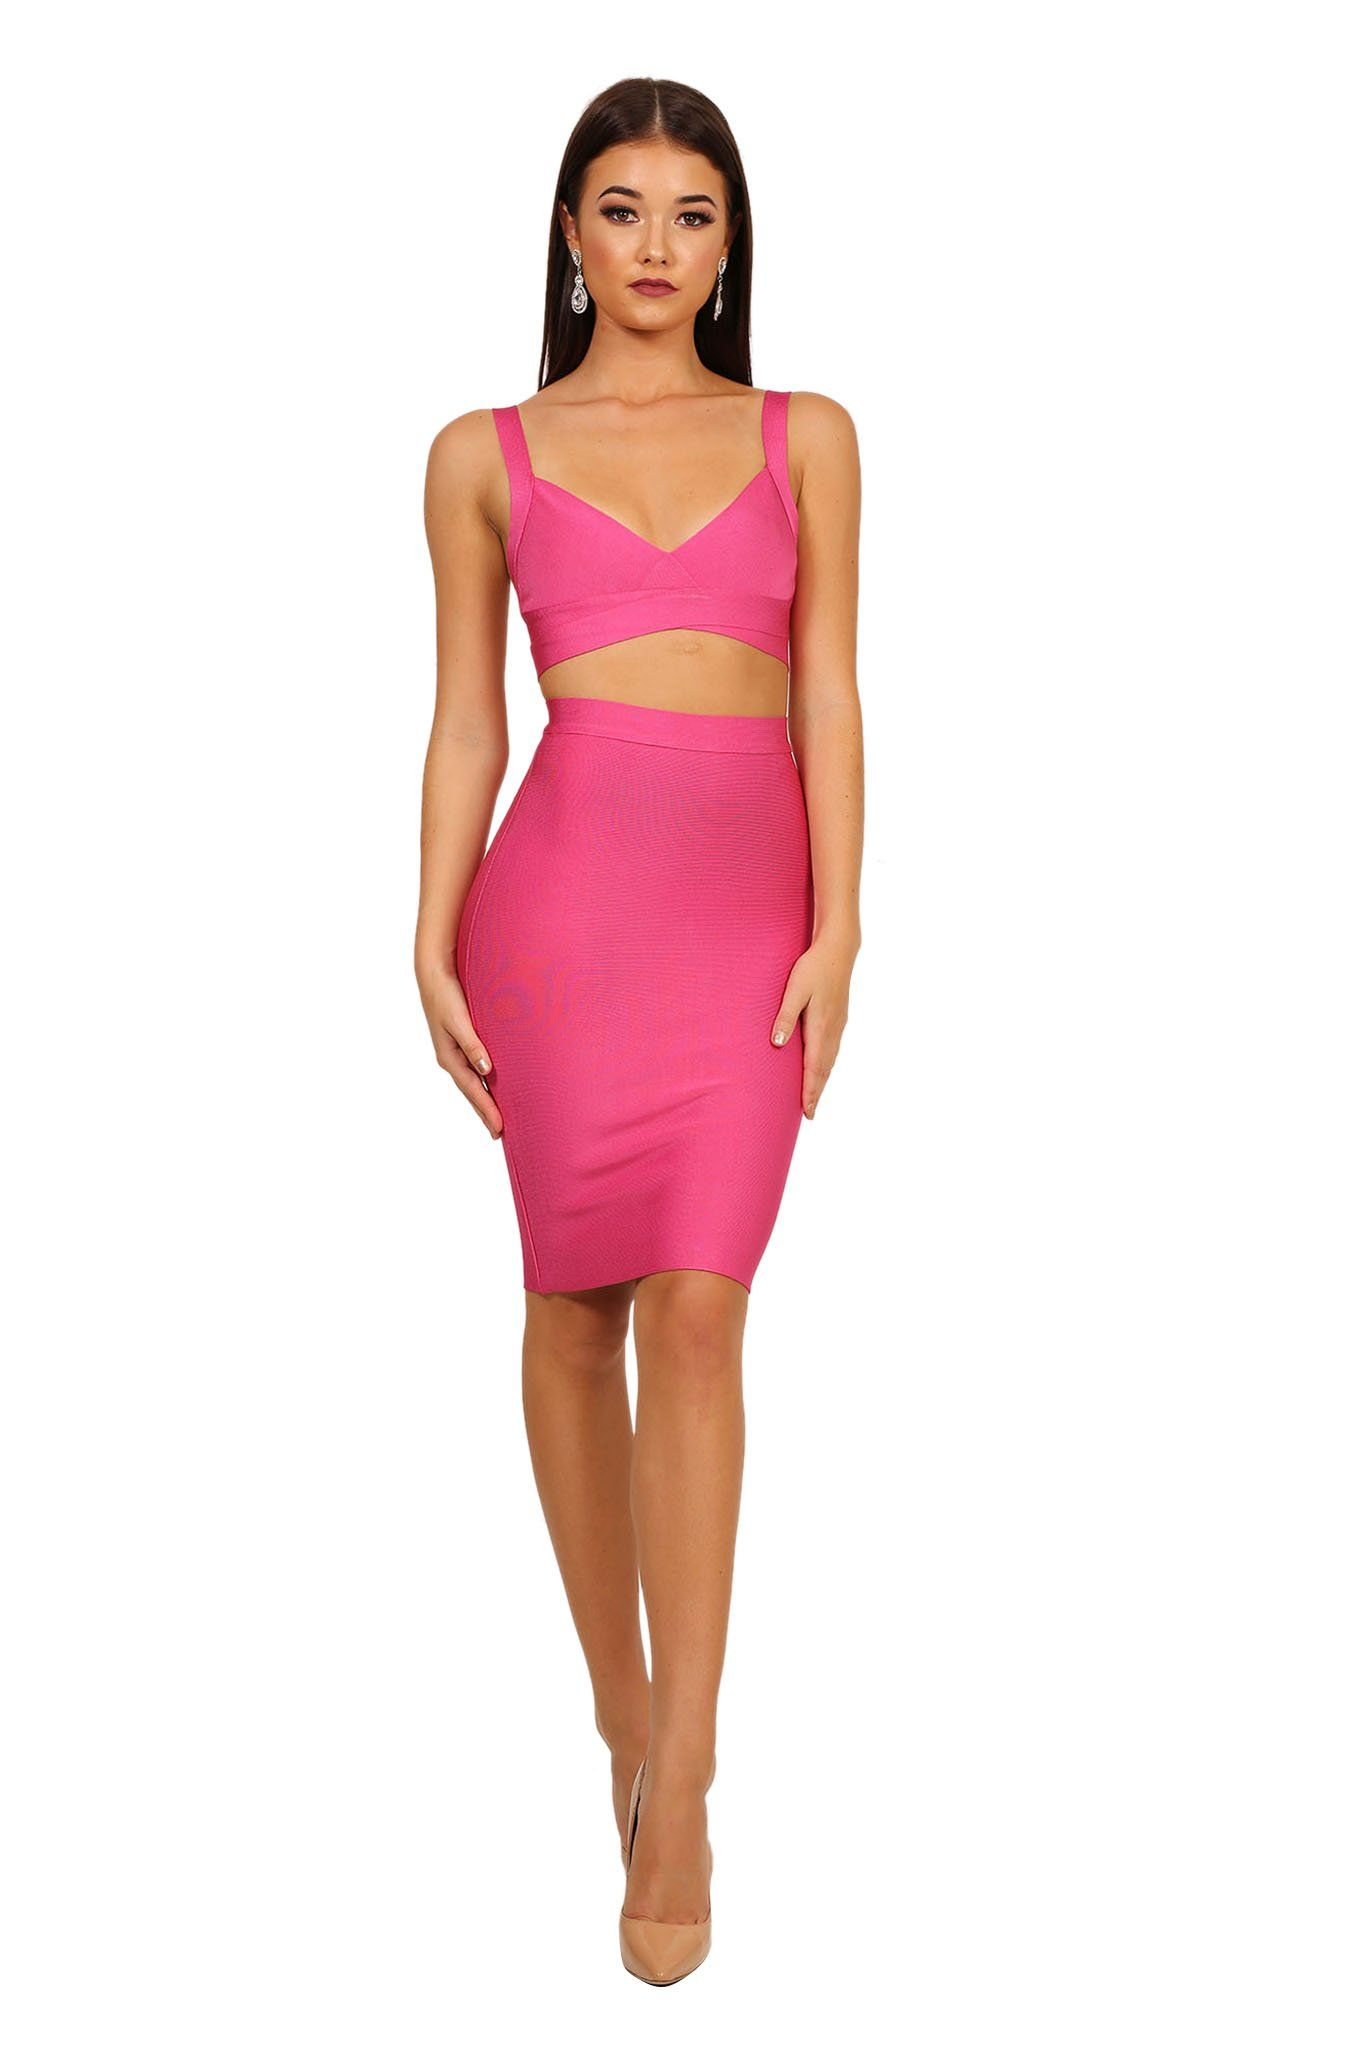 Hot Pink coloured two-piece bandage dress including bralette style top with cut outs and midi skirt